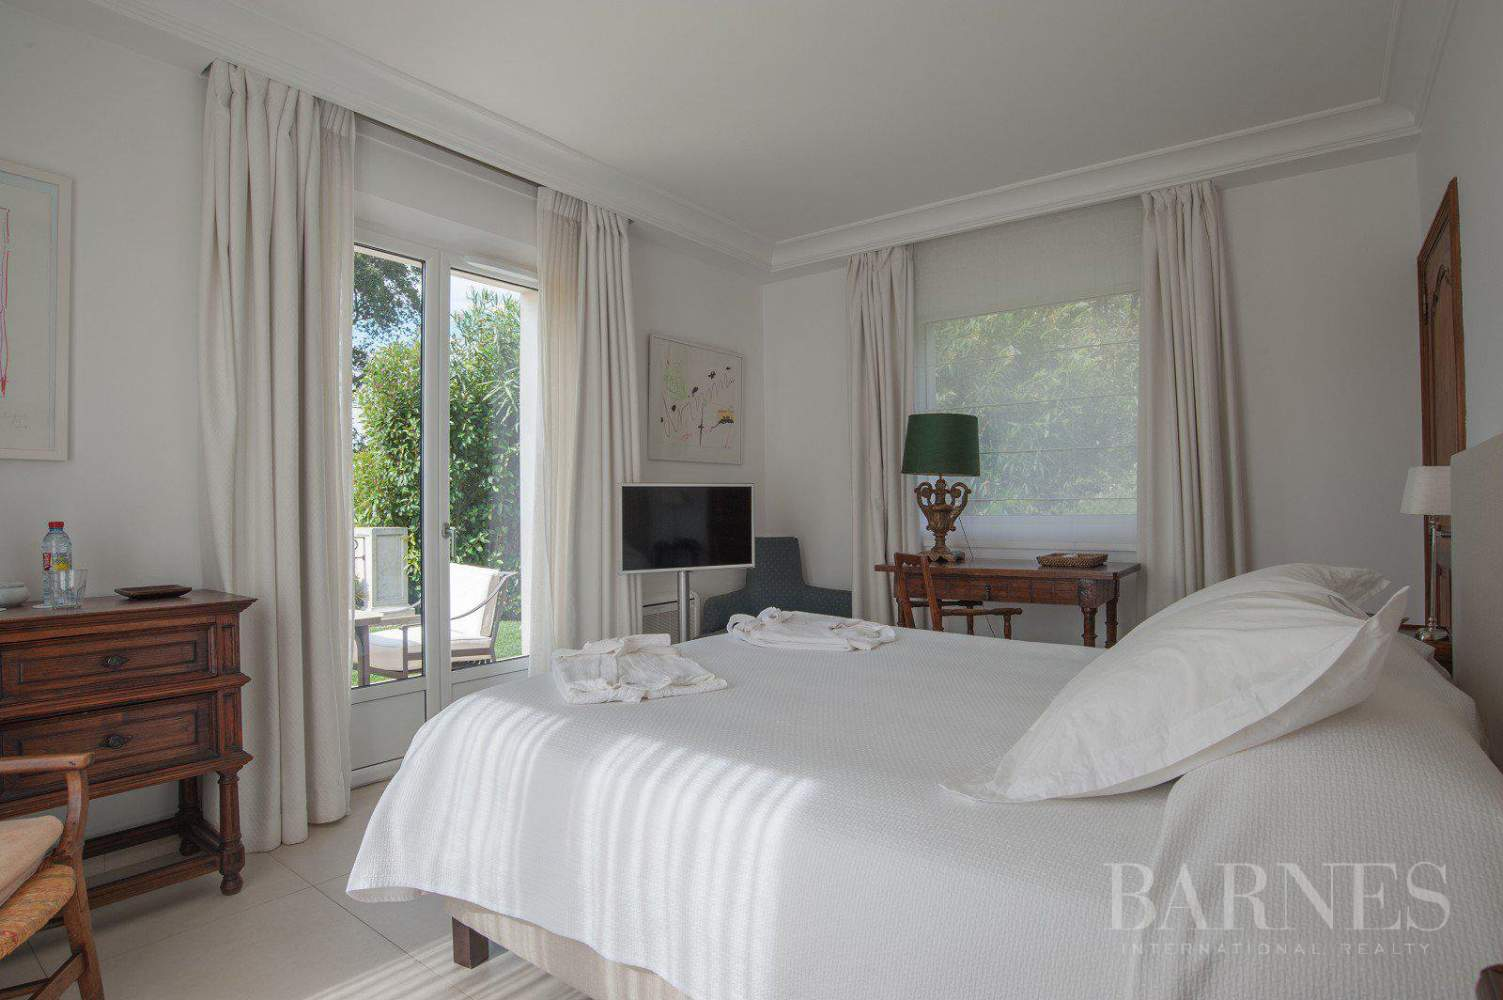 SAINT TROPEZ - 8 bedrooms - Villa sea view prox beaches and village picture 11